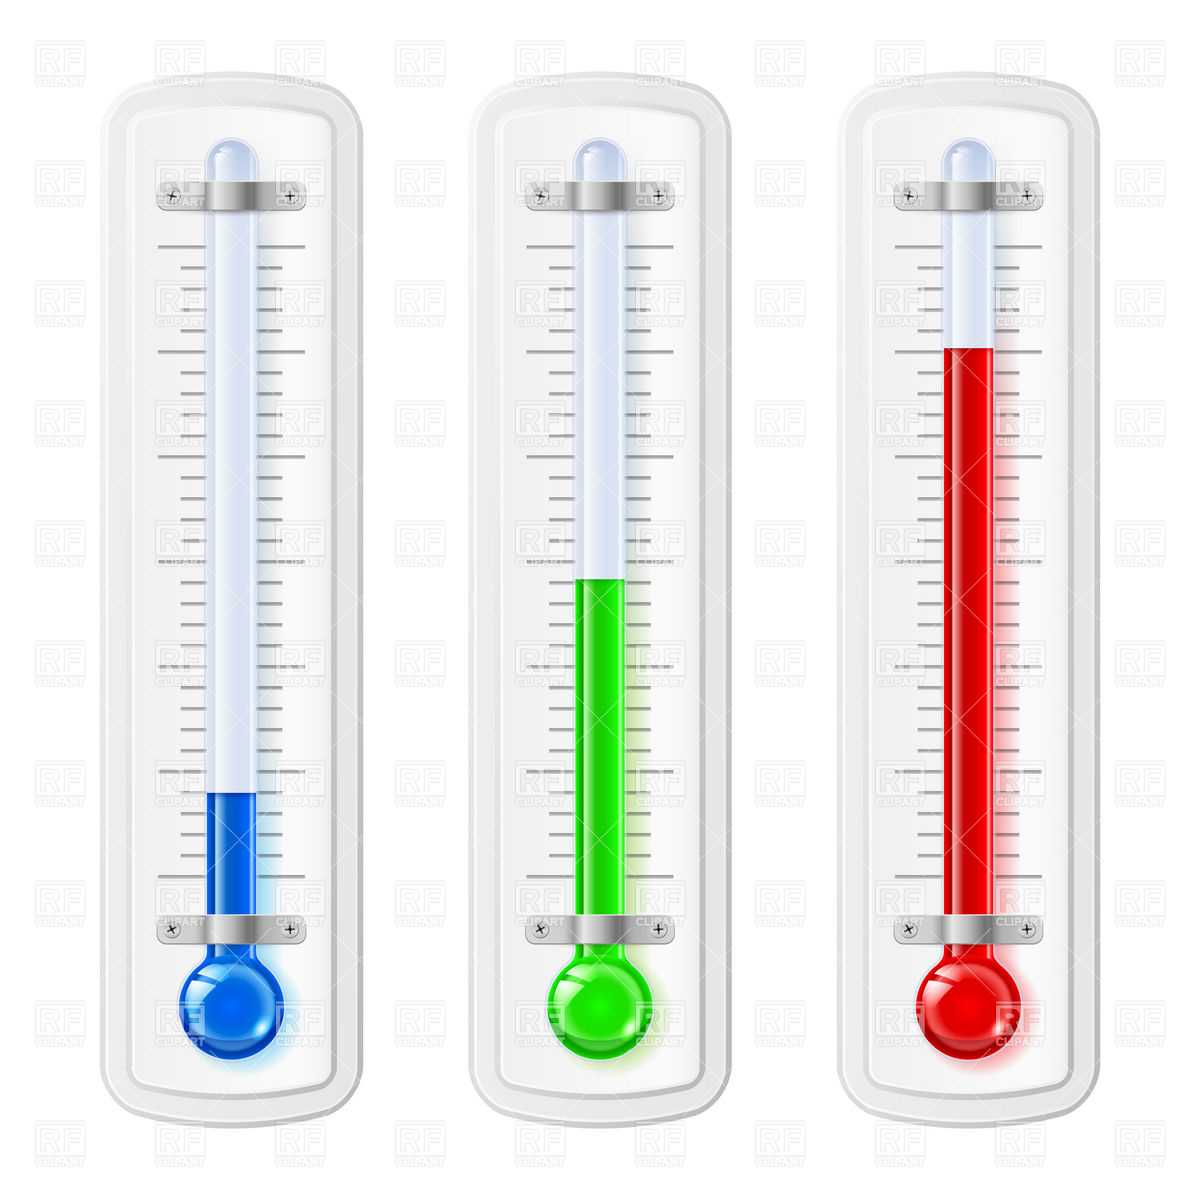 1200x1200 Printable Fundraising Thermometer Clipart Clipartix Corporate